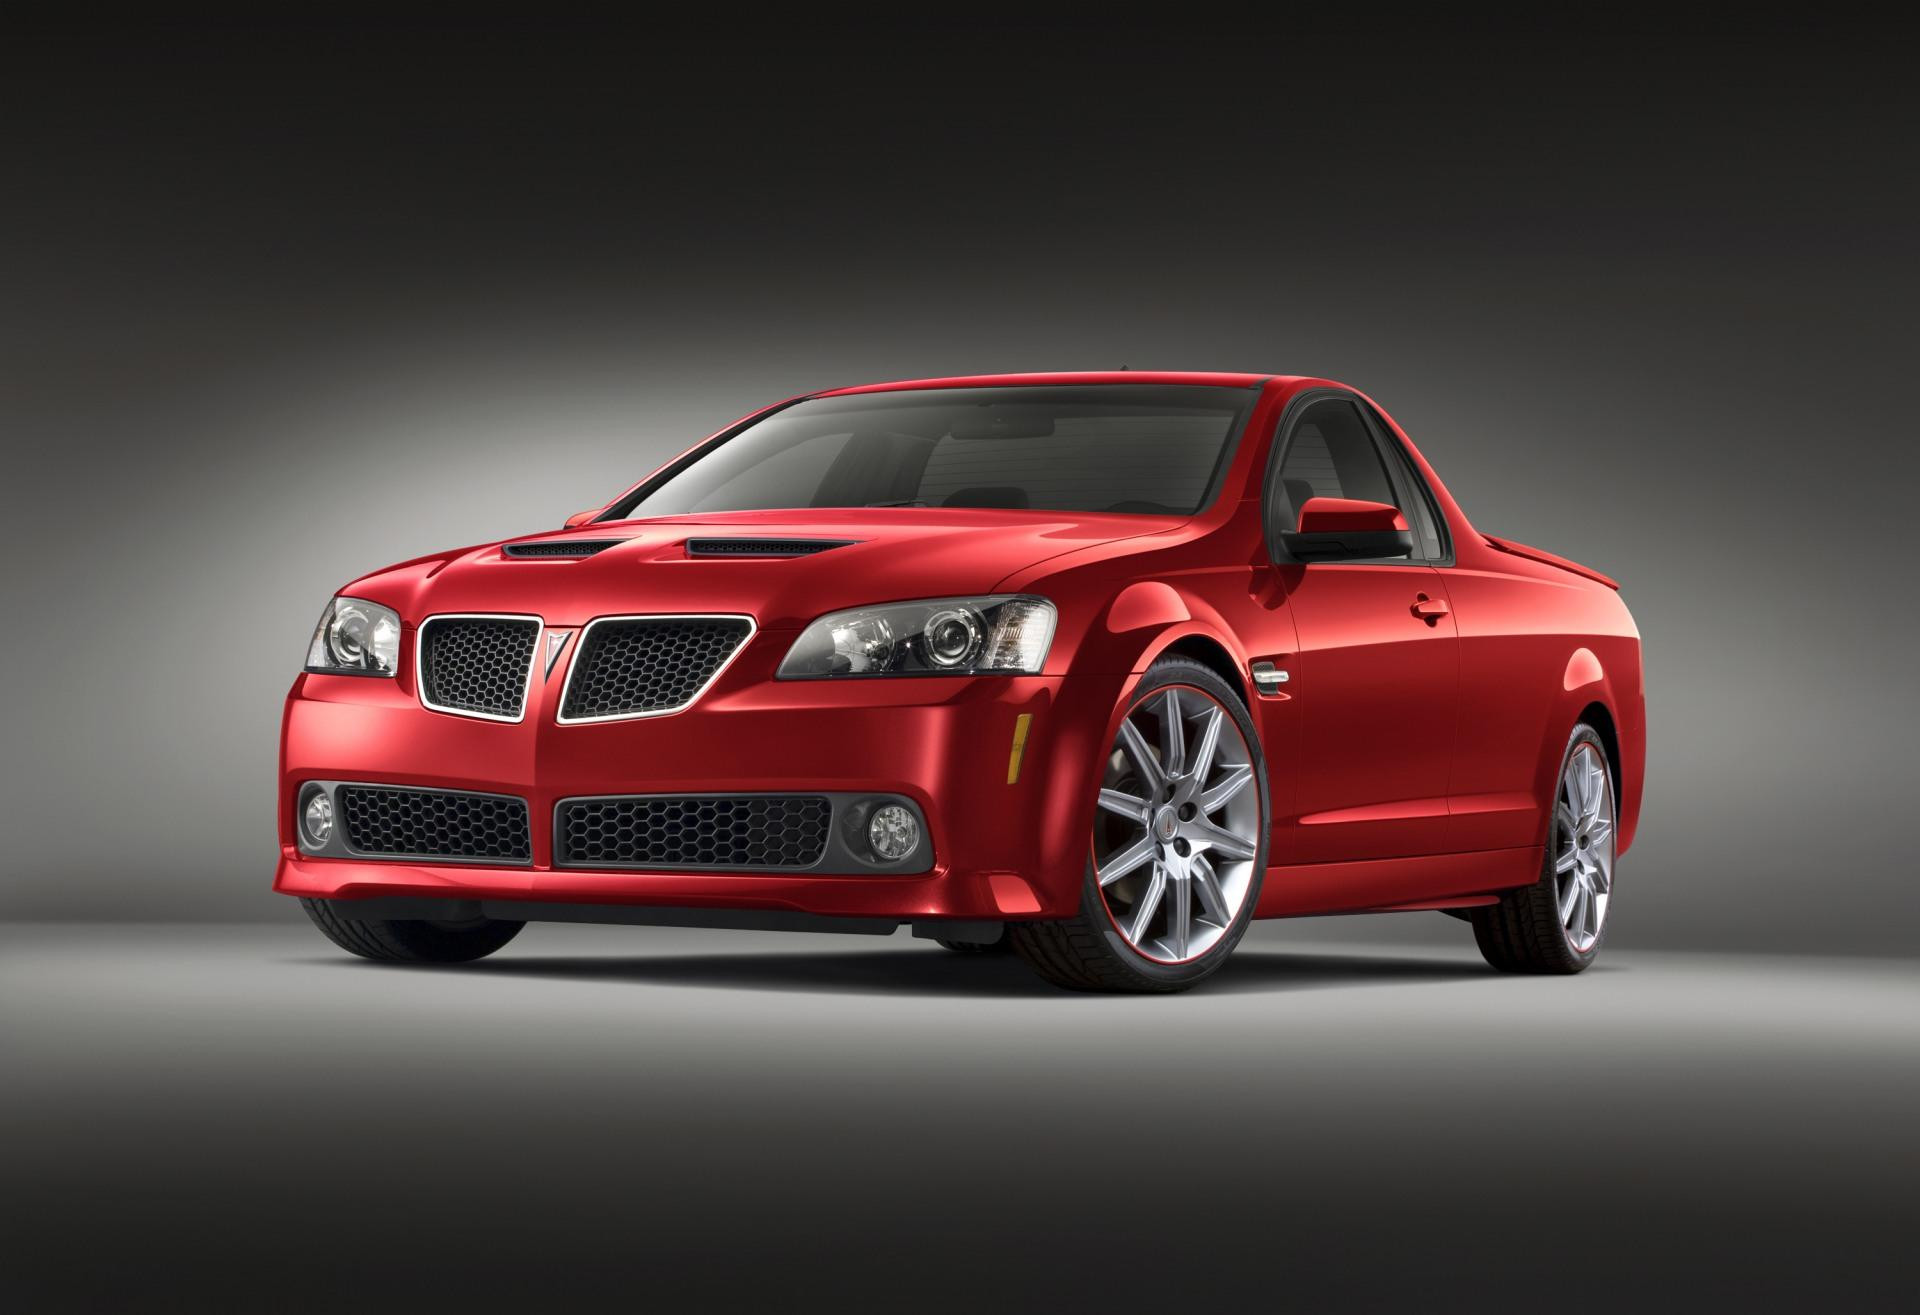 2009 Pontiac G8 St Concept News And Information Research